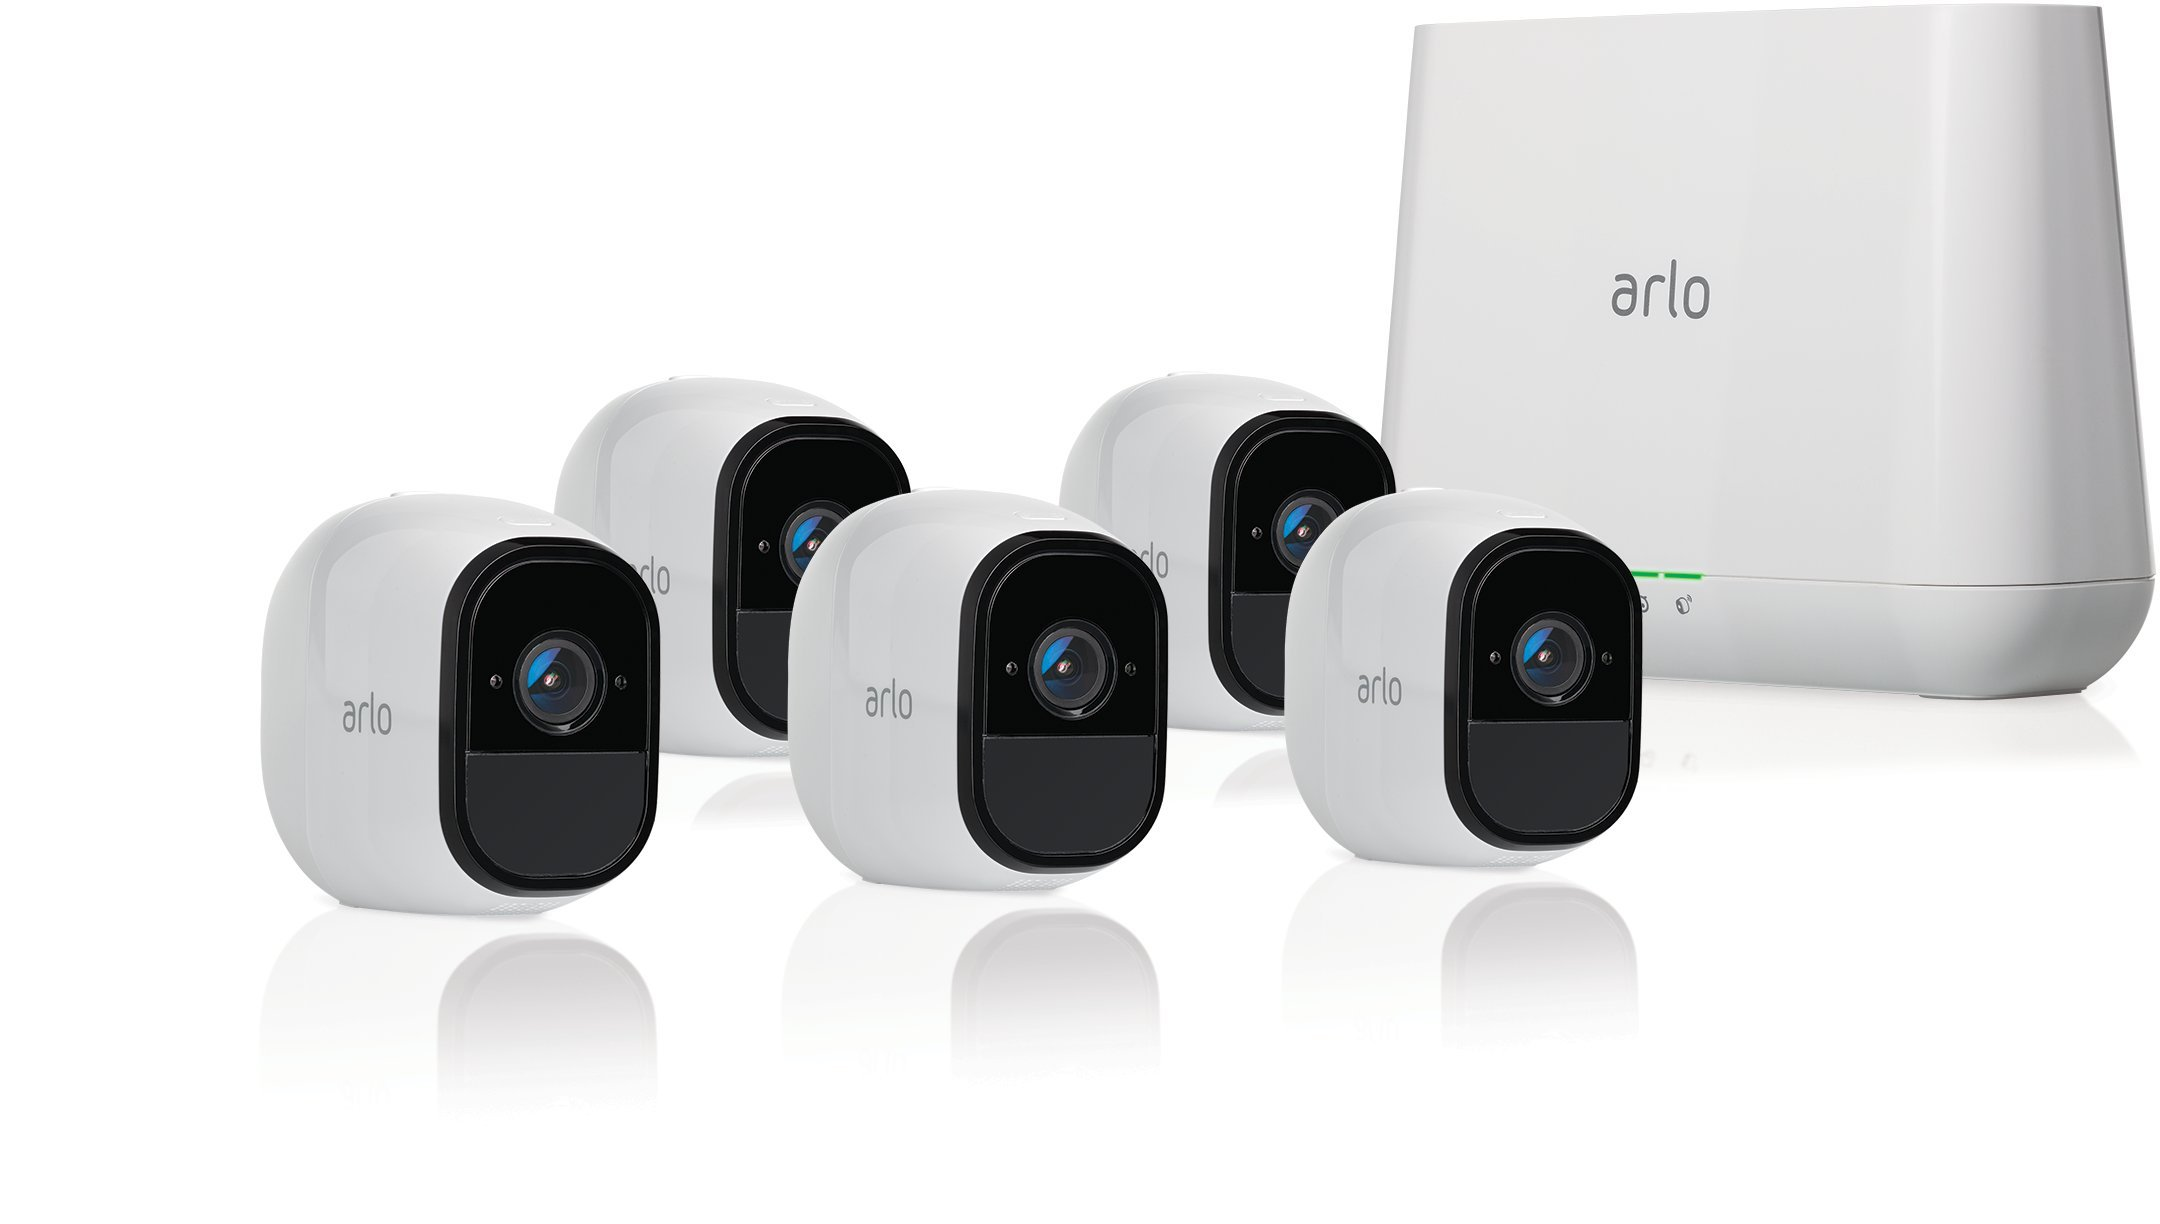 Arlo Pro by NETGEAR Security System with Siren – 5 Rechargeable Wire-Free HD Cameras with Audio, Indoor/Outdoor, Night Vision (VMS4530)